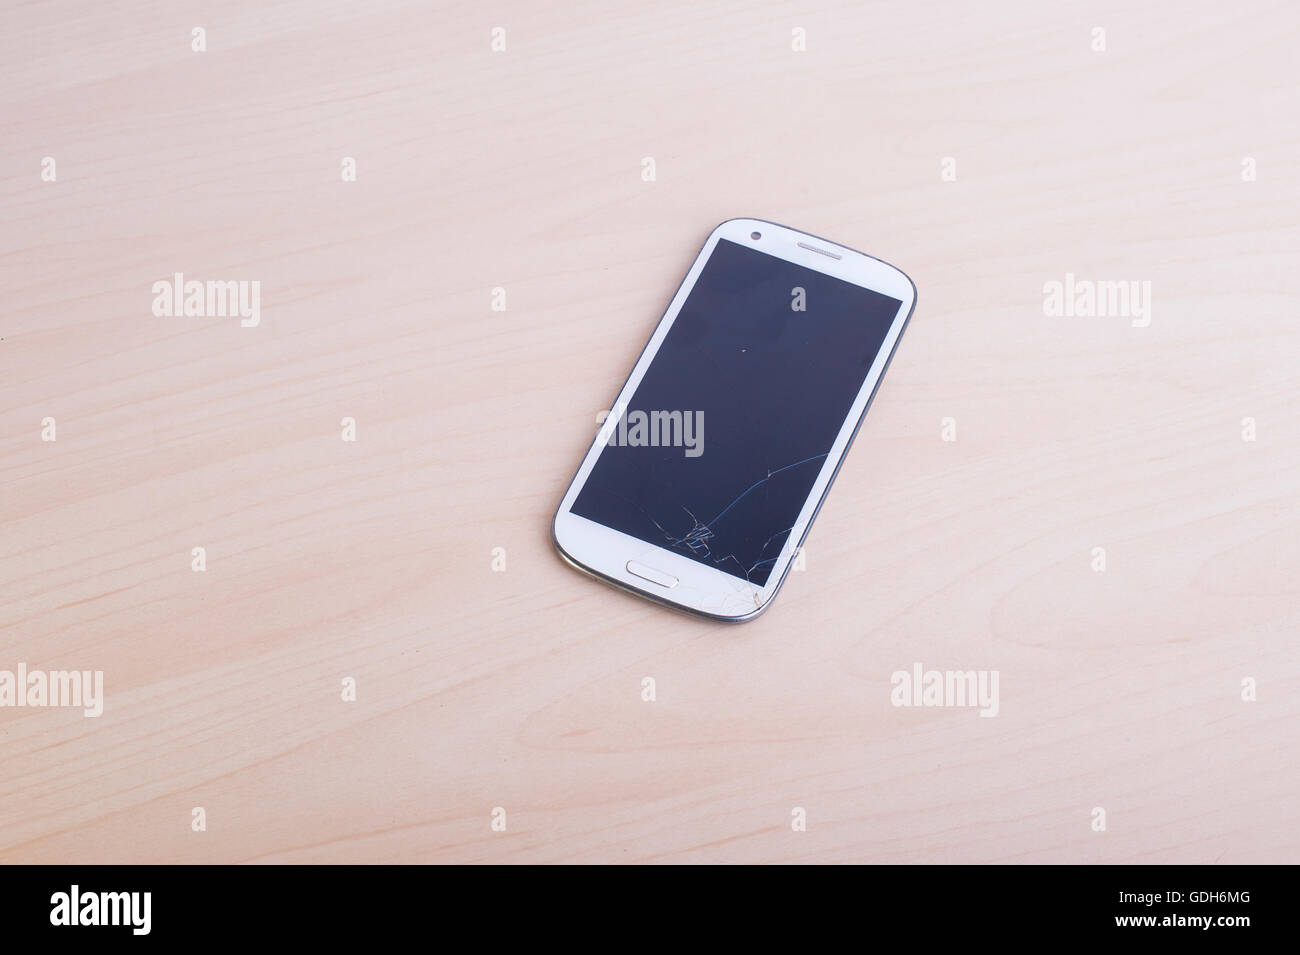 Broken mobile phone screen. Smartphone monitor damage. Cellphone crash and scratch. Telephone fail. Display glass - Stock Image